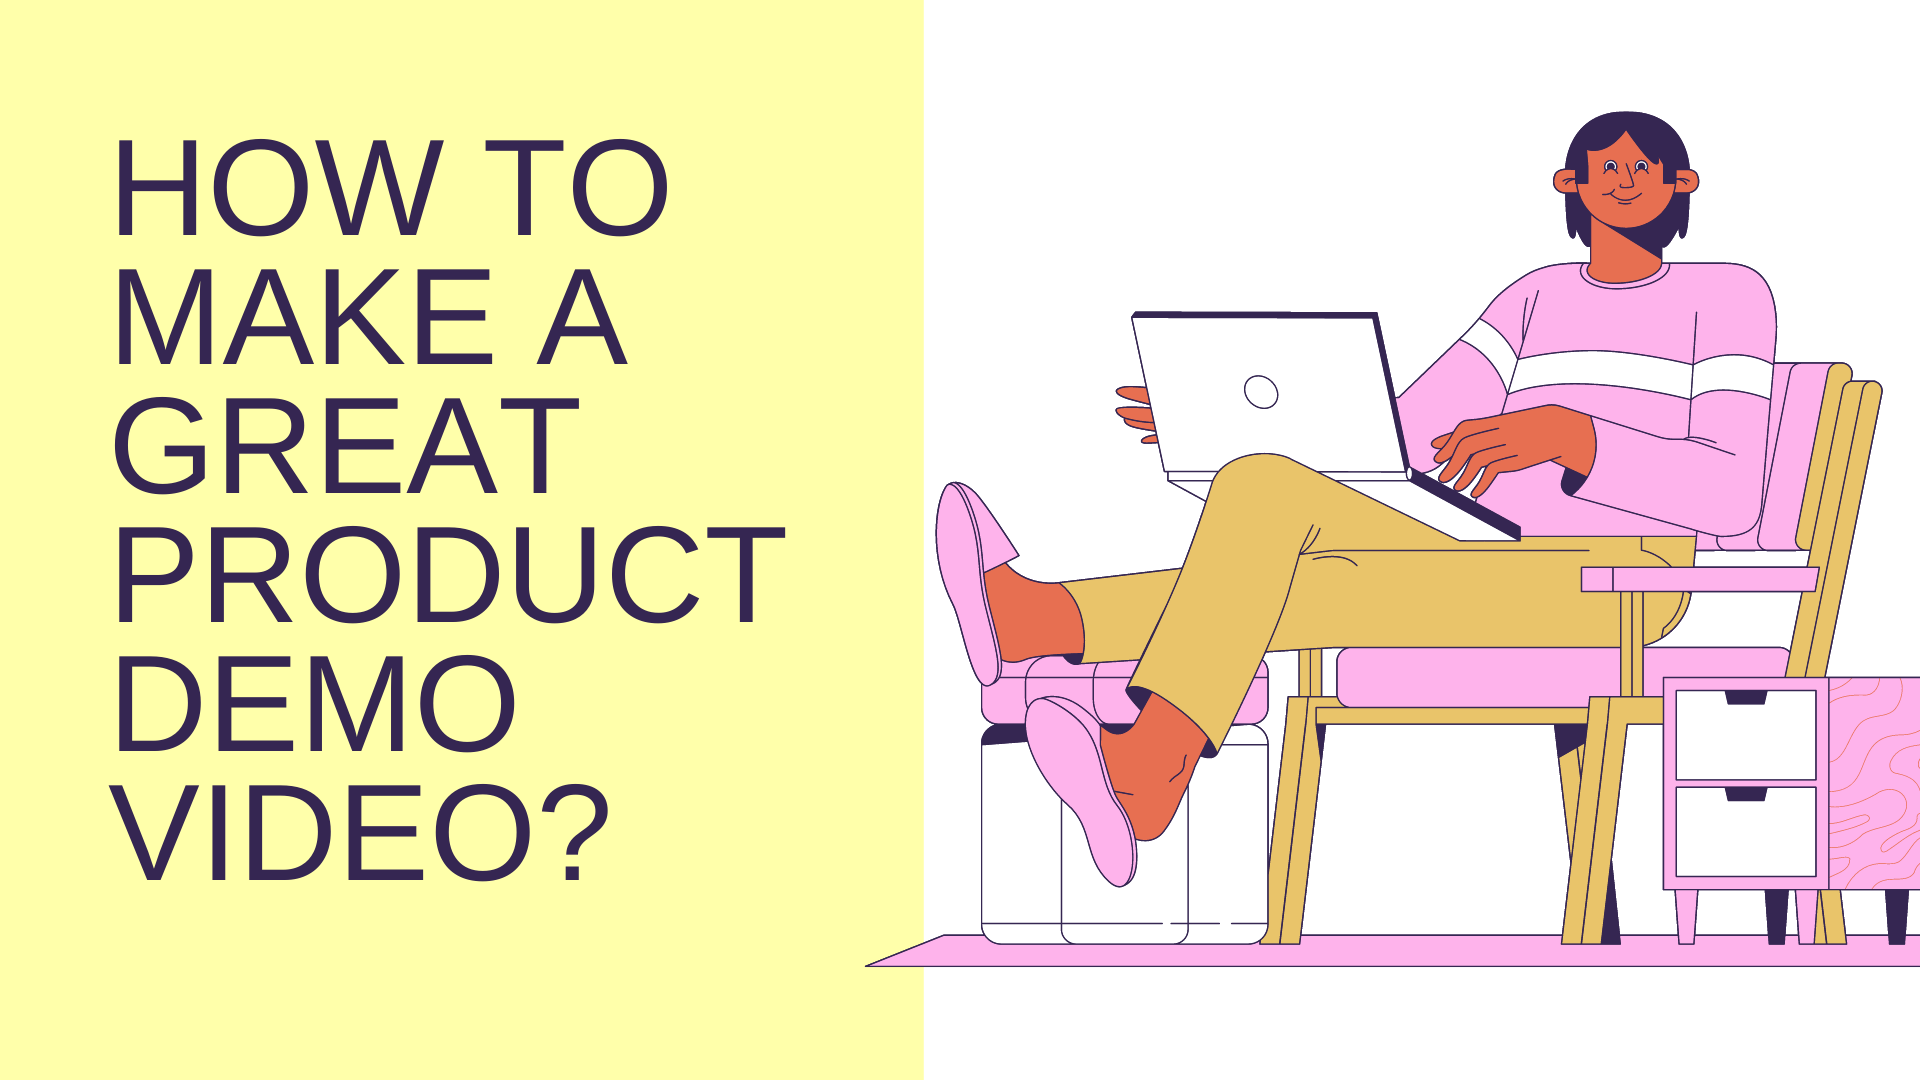 How to make a great product demo video